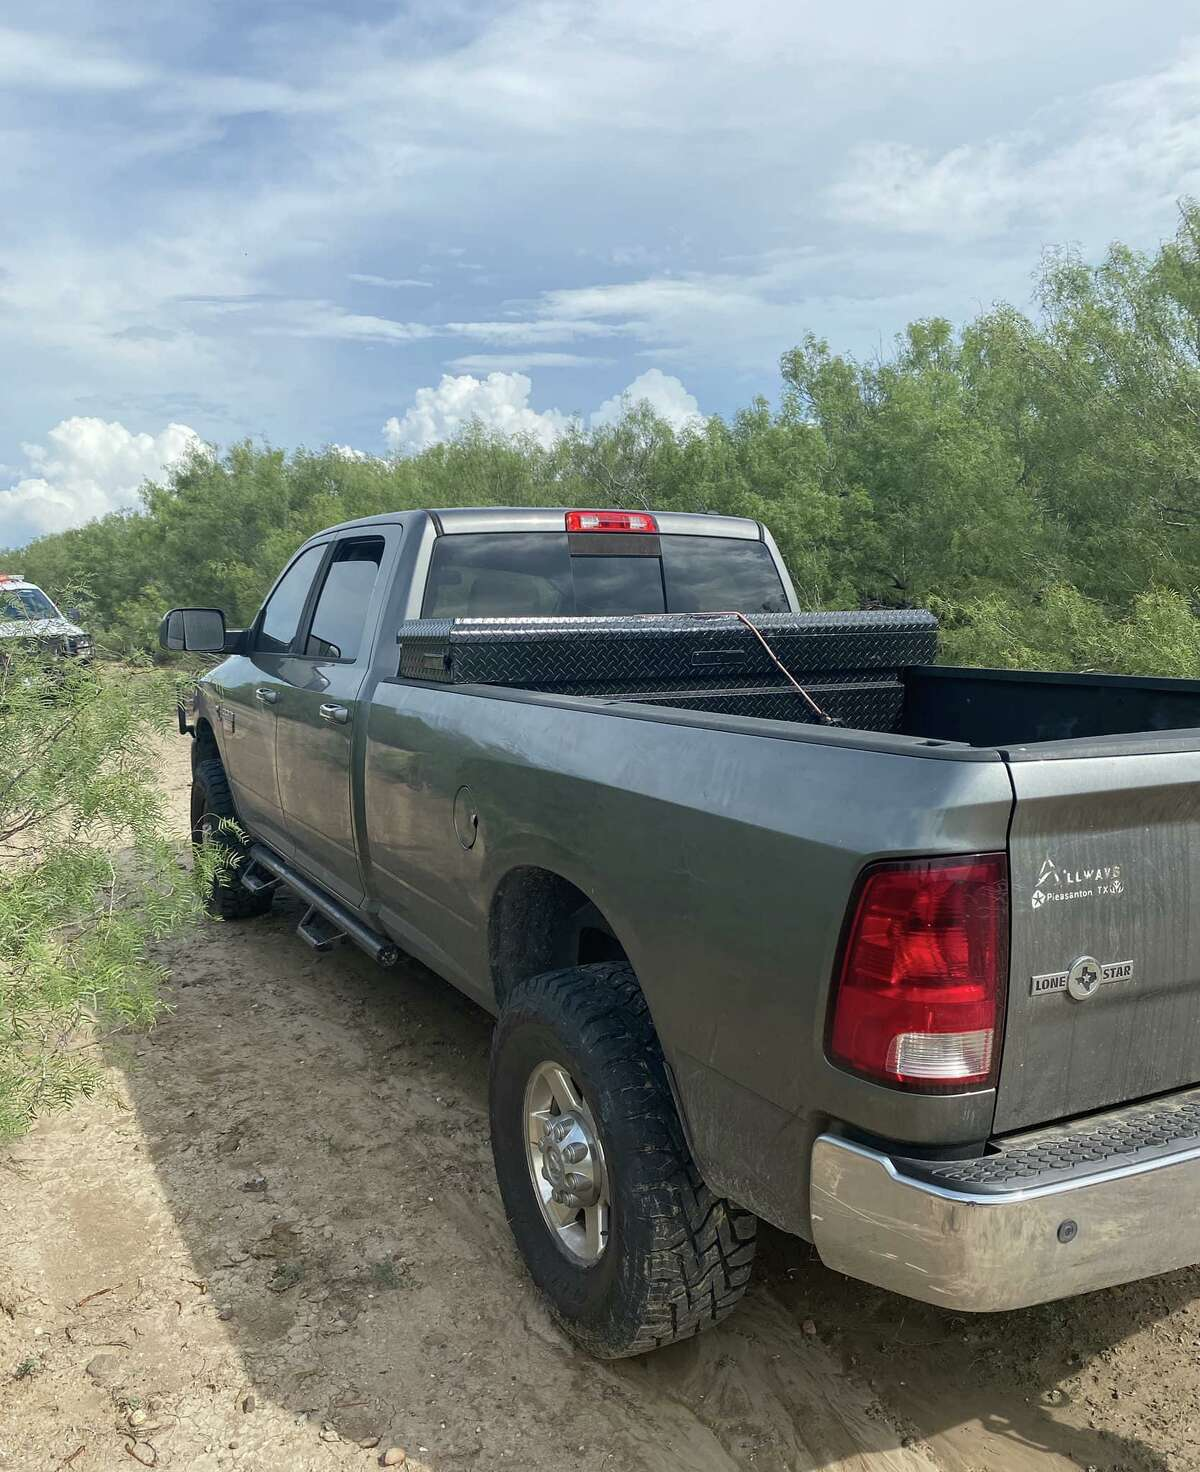 A truck reported stolen out of San Antonio was discovered inside a ranch by Freer agents after driving through a fence.